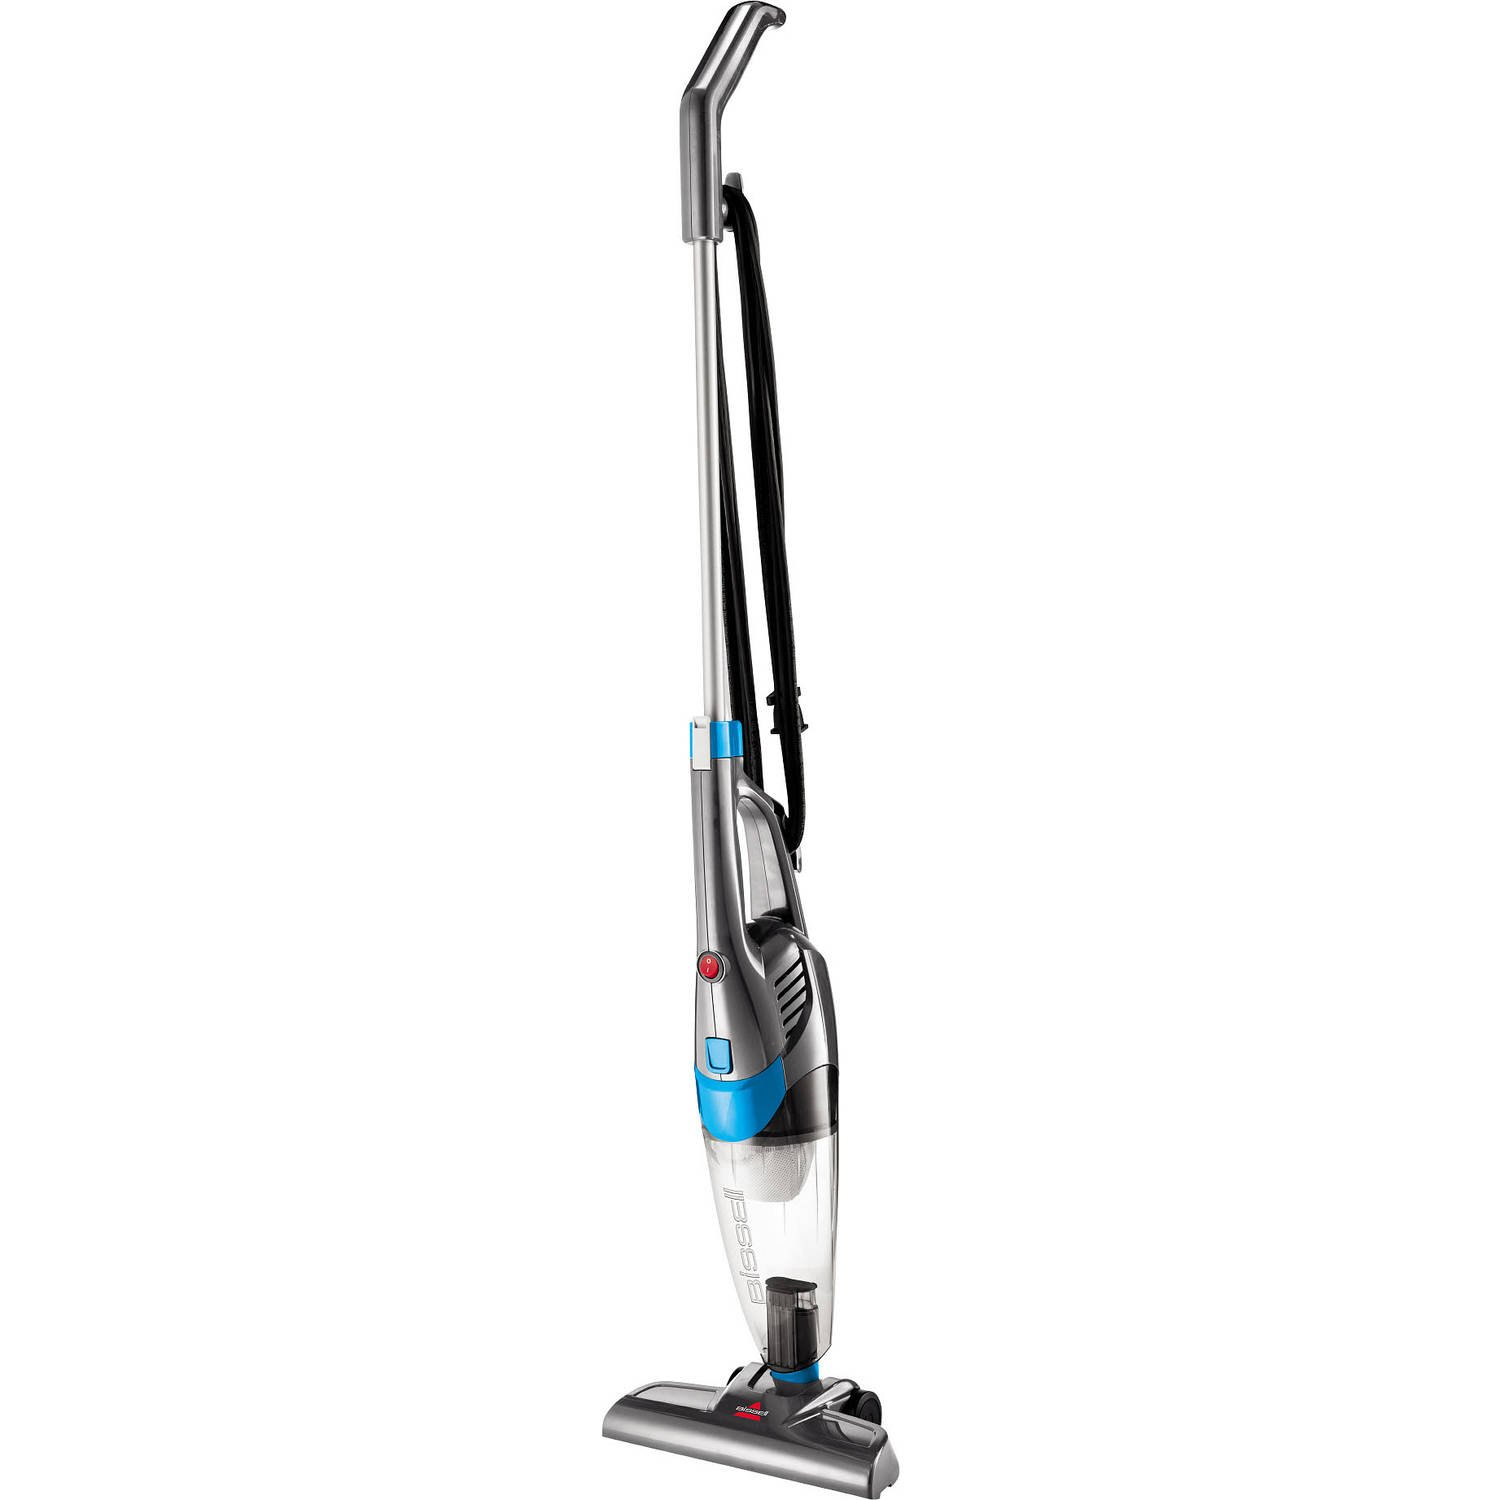 NEW Bissell 3 in 1 Lightweight Stick Hand Vacuum Cleaner, Corded - Convertible to Handheld Vac, Grey